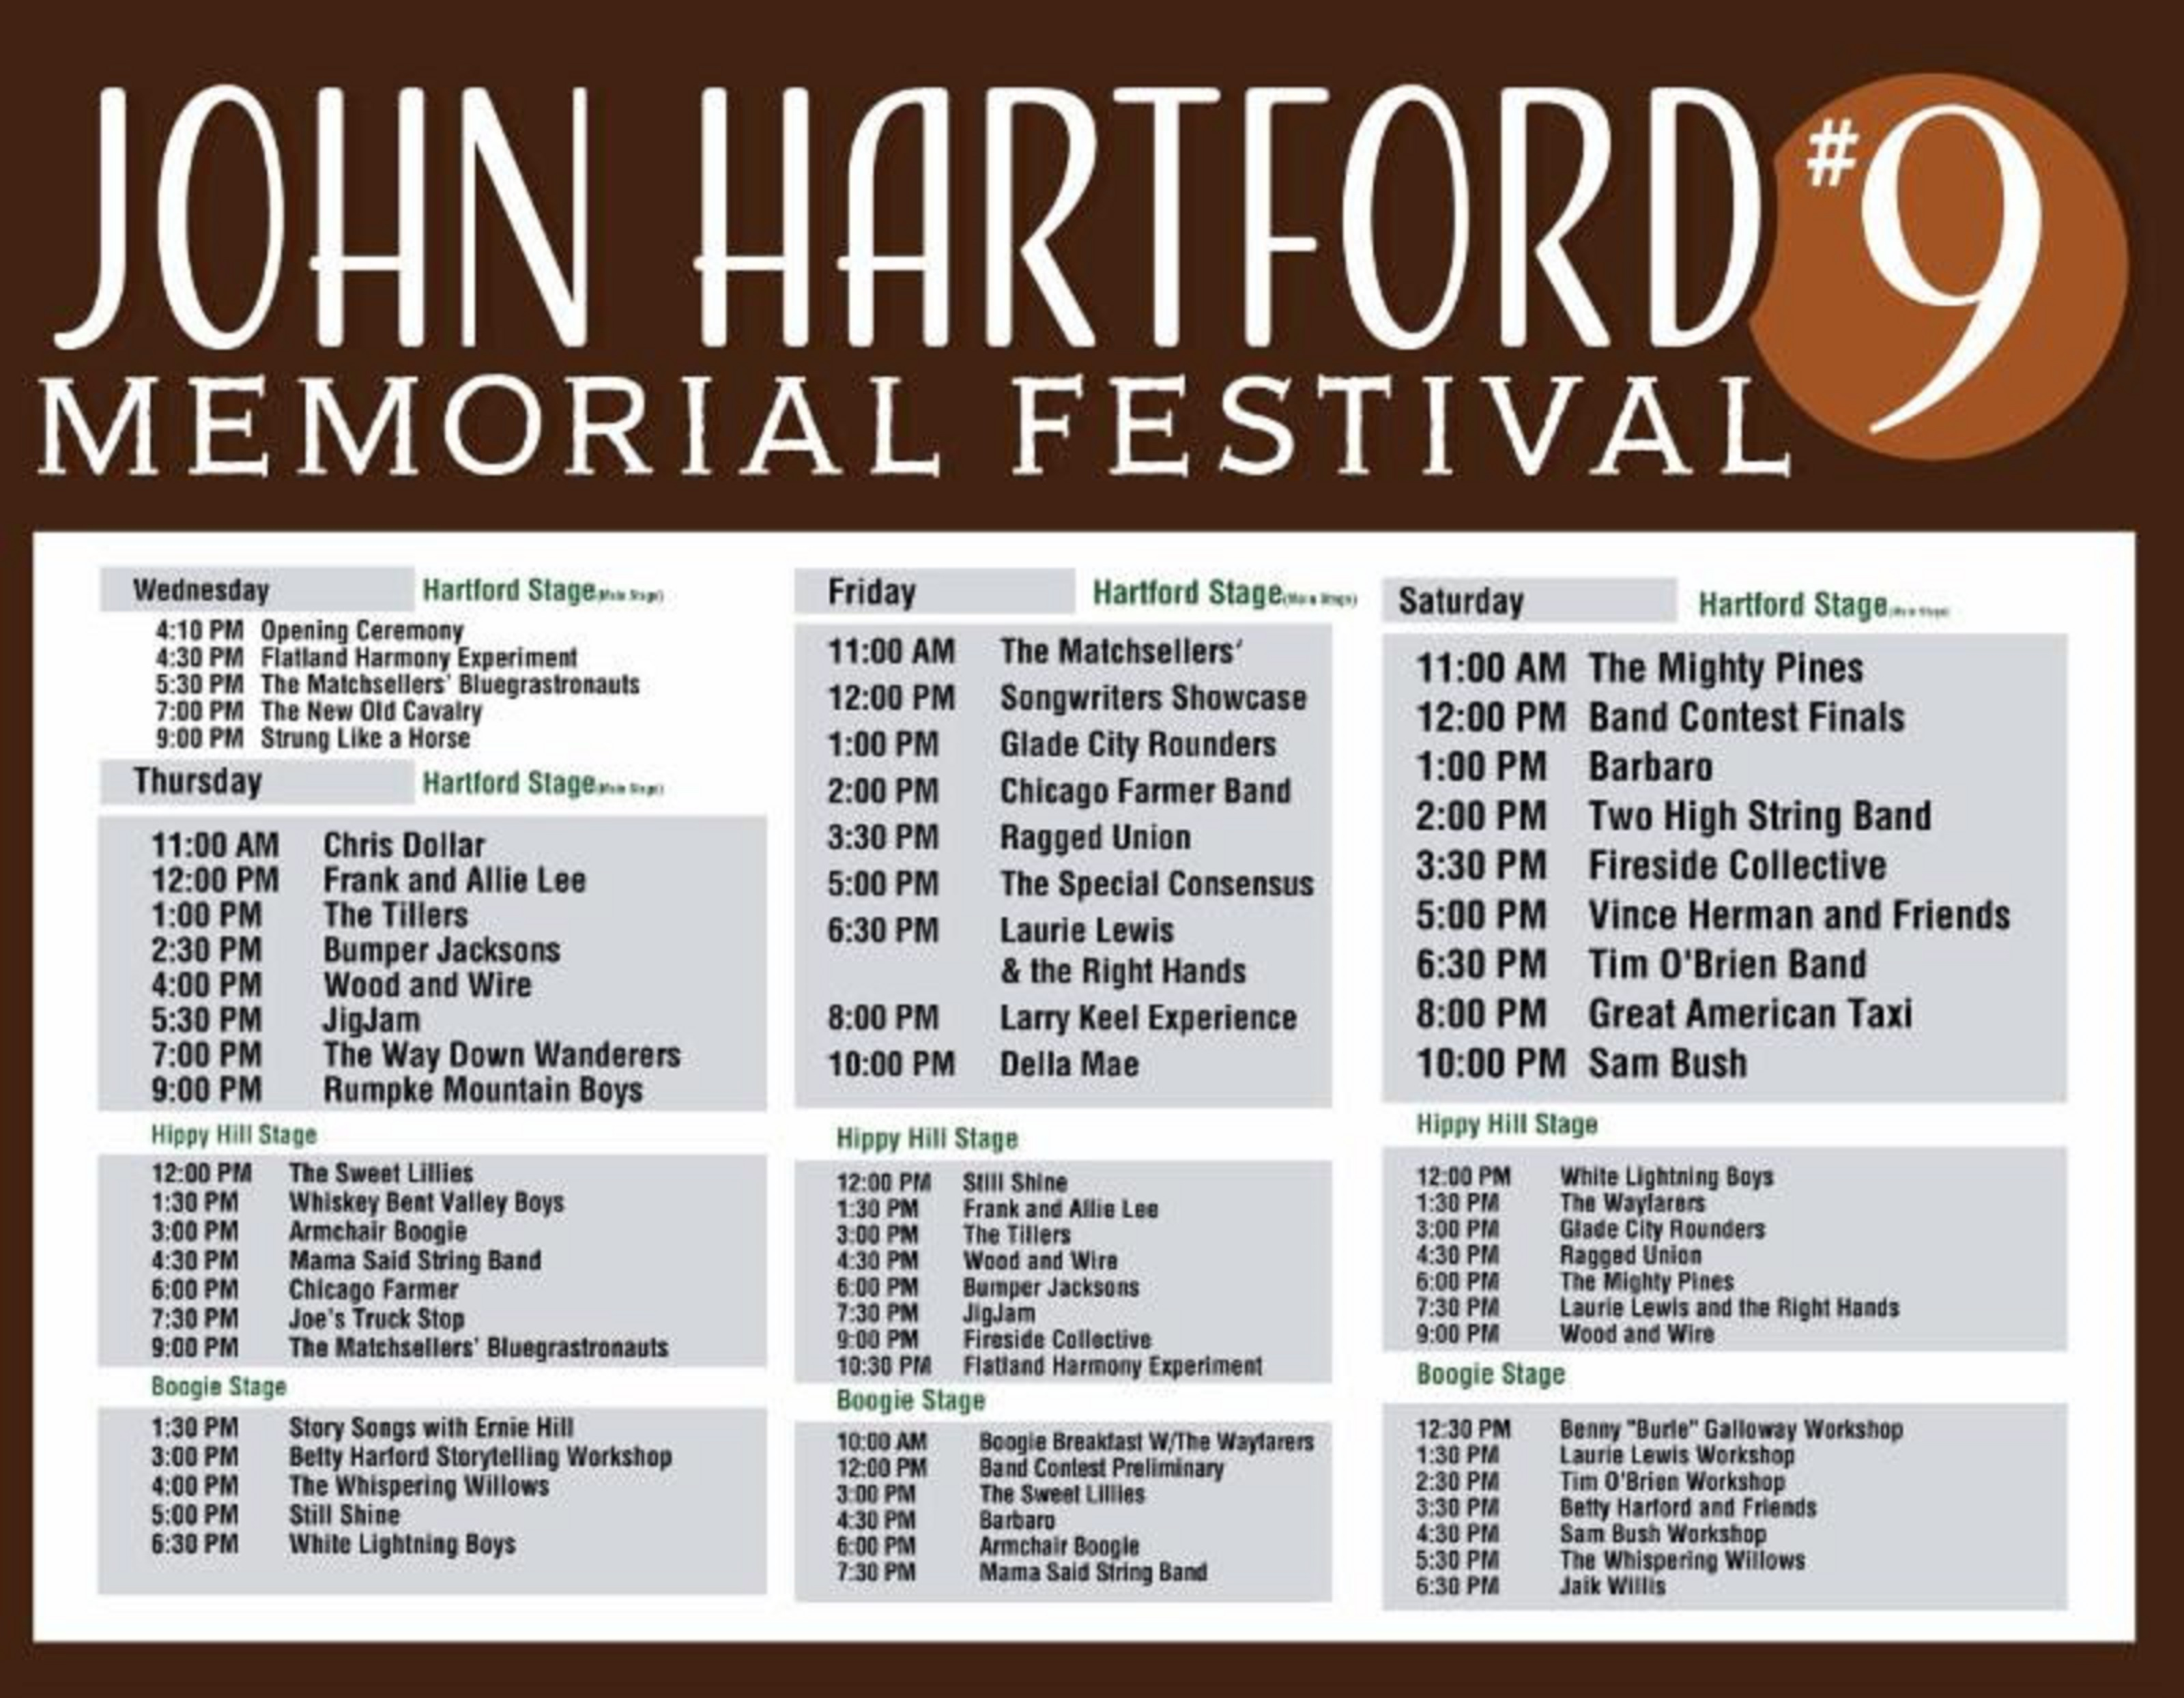 John Hartford Memorial Festival Announces 2019 Schedule